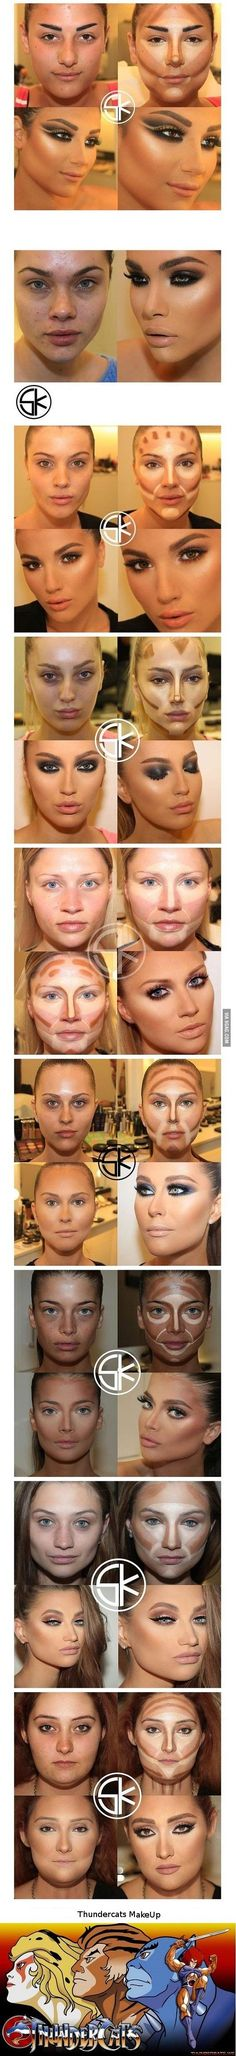 This is actually helpfull makeup tutorial...(just dont go extrem...) If you do, its nothing but lies, dont forget to take them to the pool.